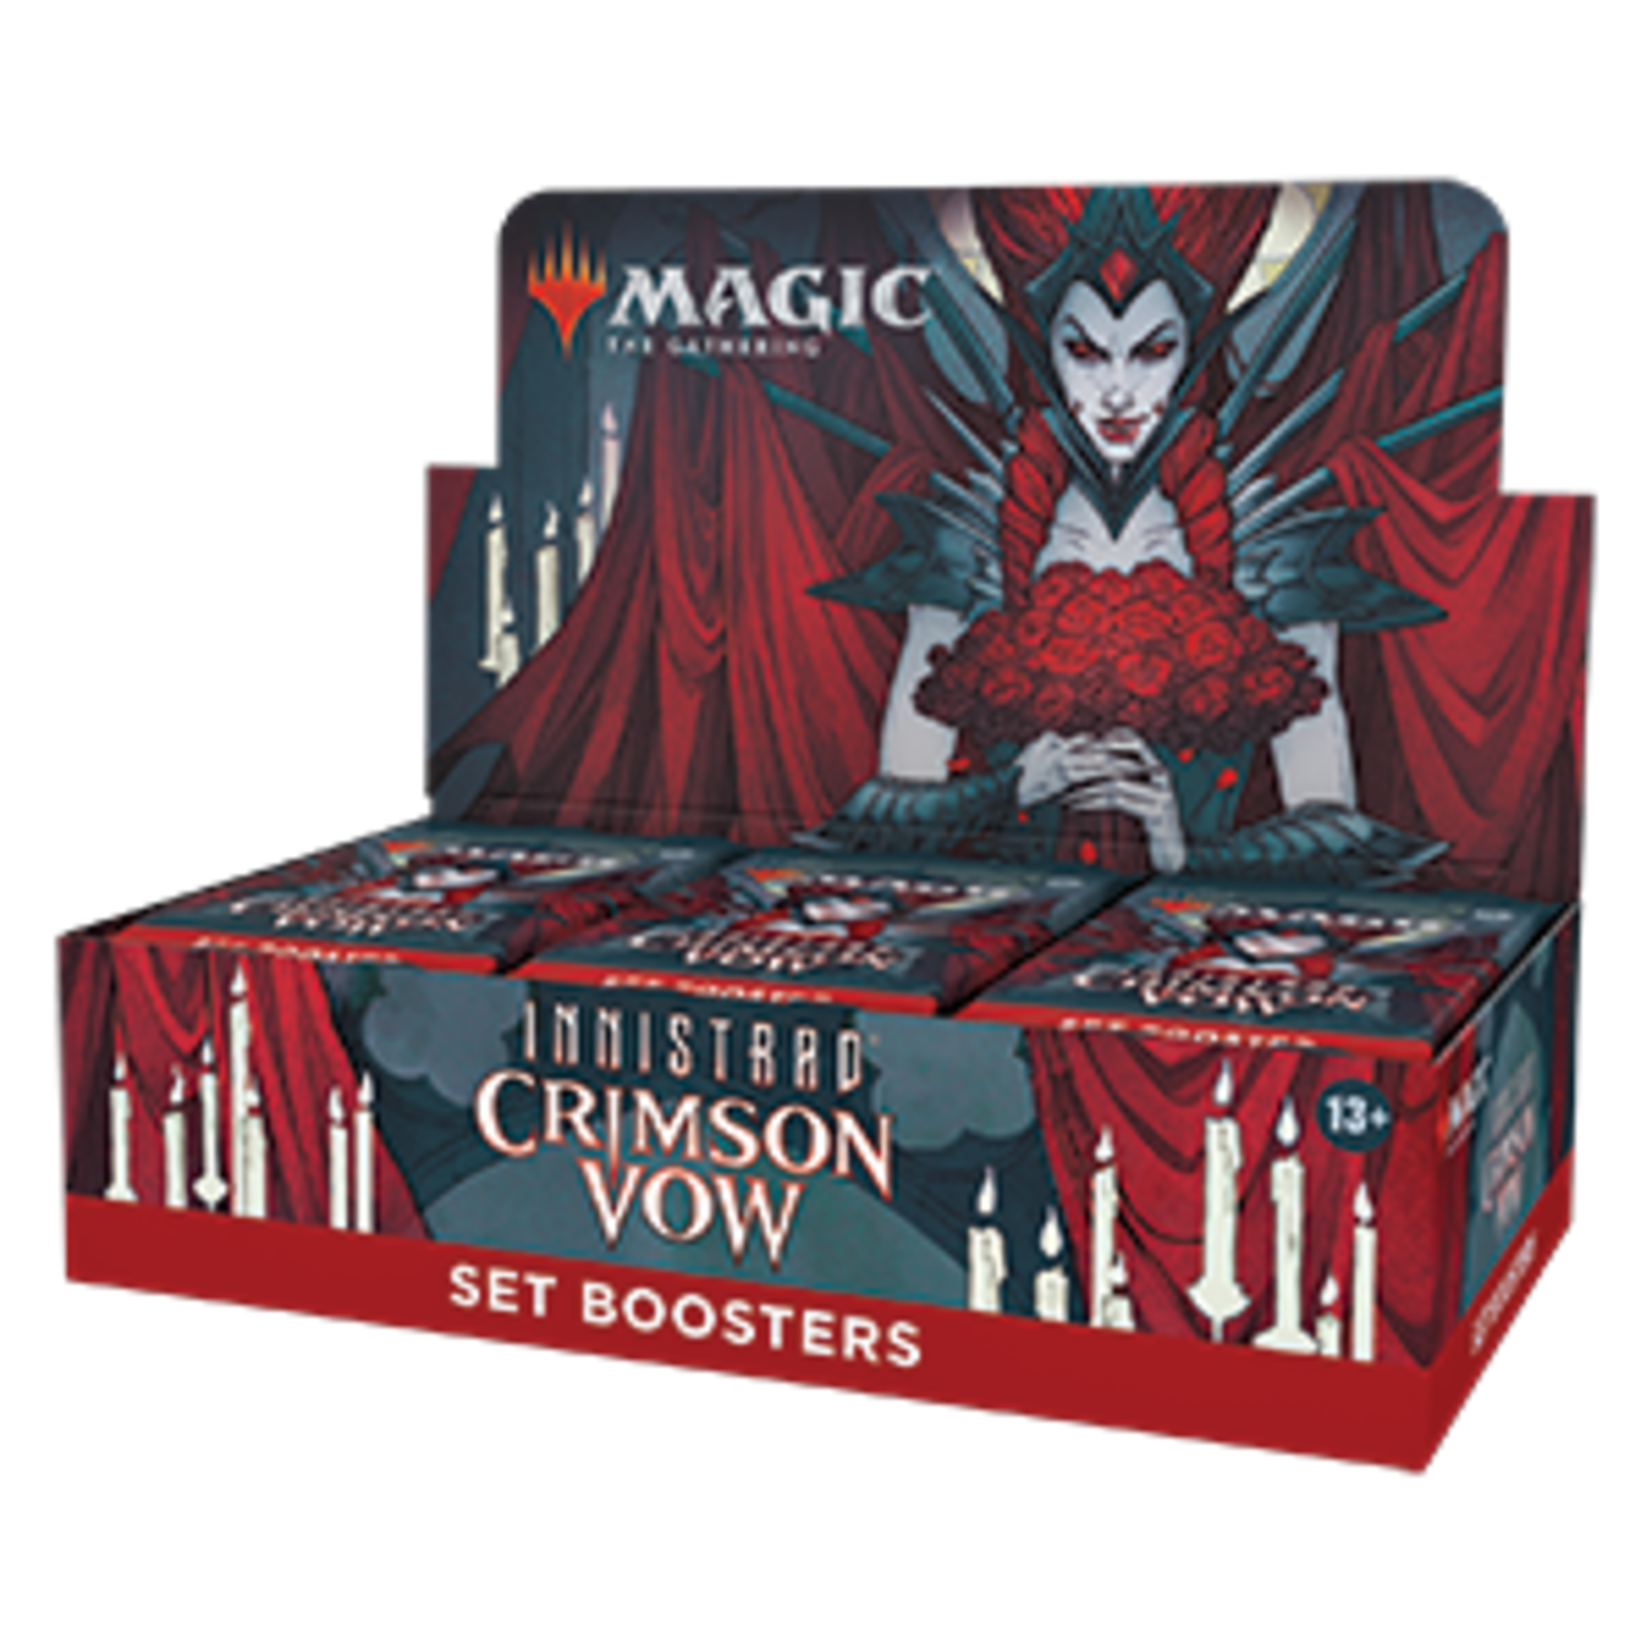 Magic: The Gathering Magic: The Gathering - Innistrad: Crimson Vow Set Booster Box